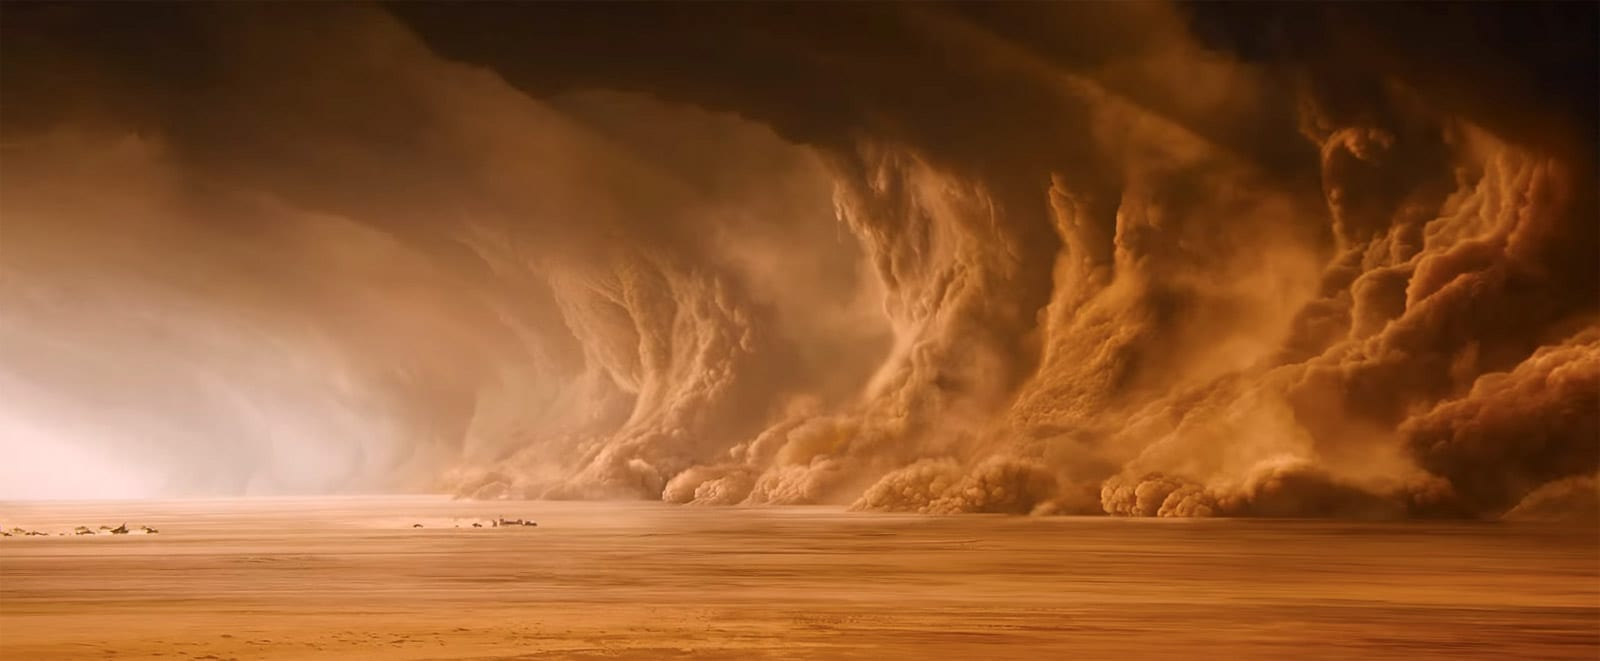 artbook-mad-max-fury-road-screen-10-sandstorm